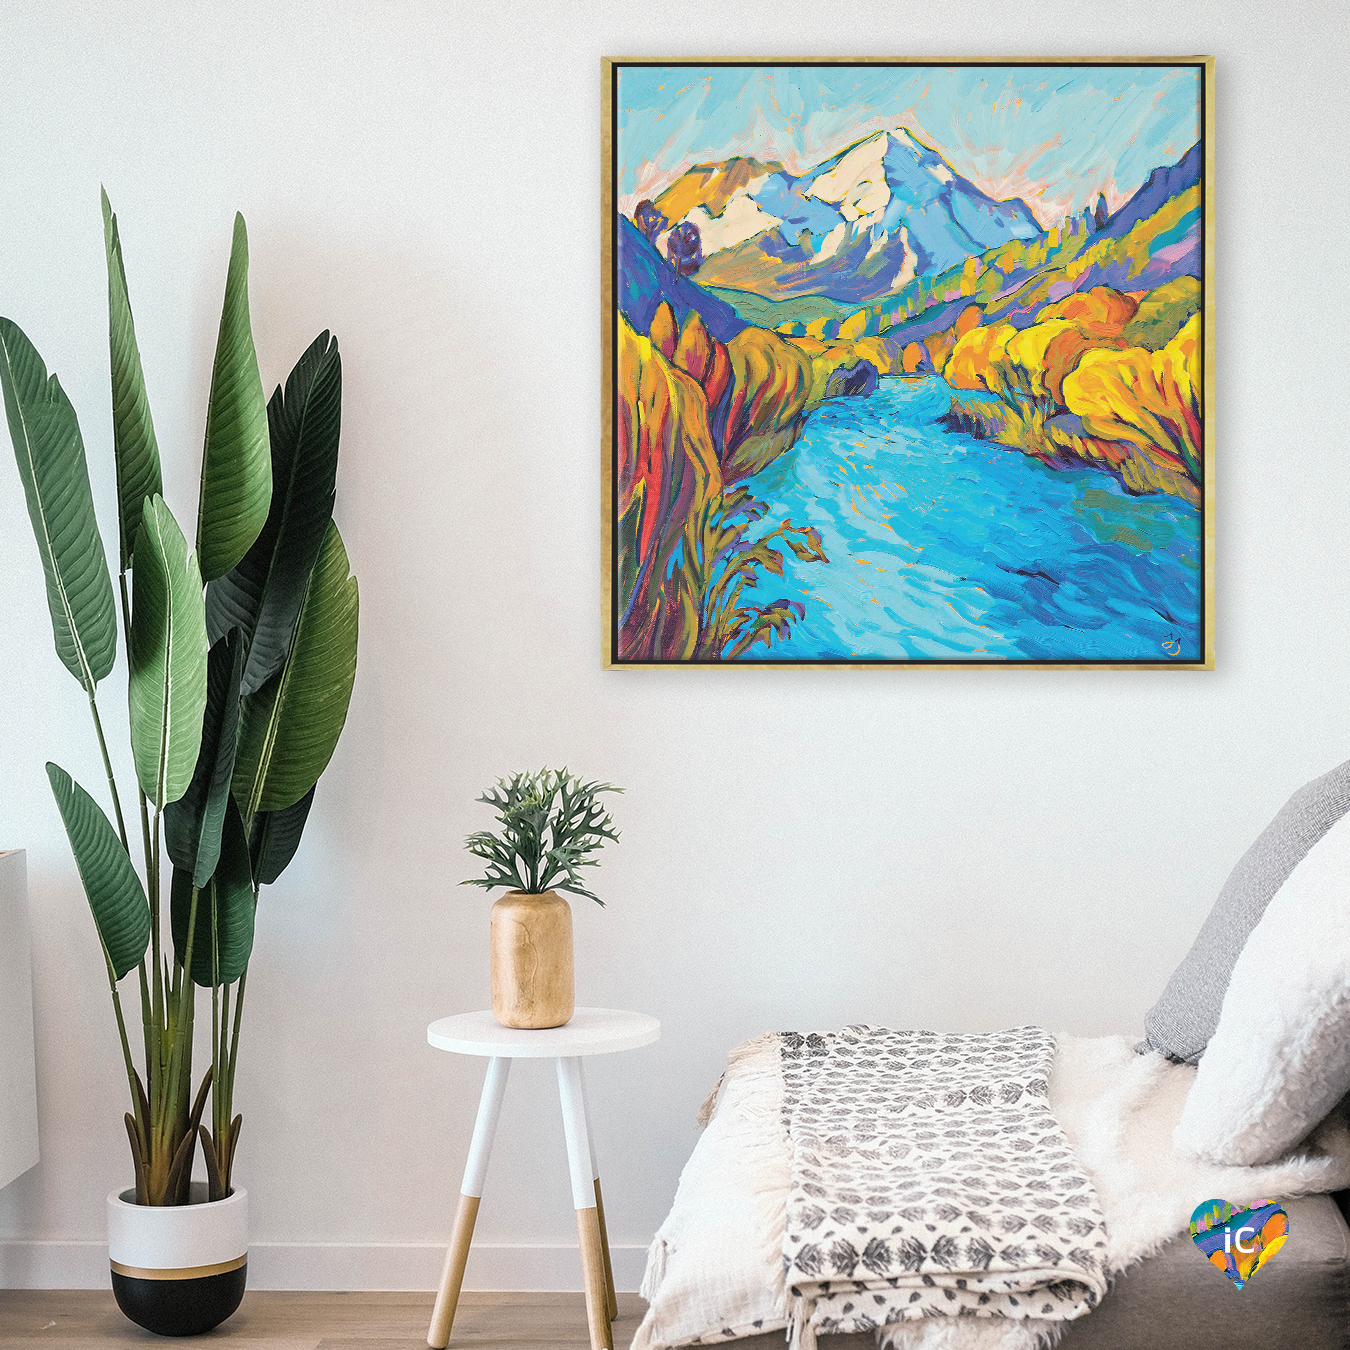 """River Mountain"" by Jessica Johnson shows a blue stream running through green and yellow banks with a mountain in the distance."